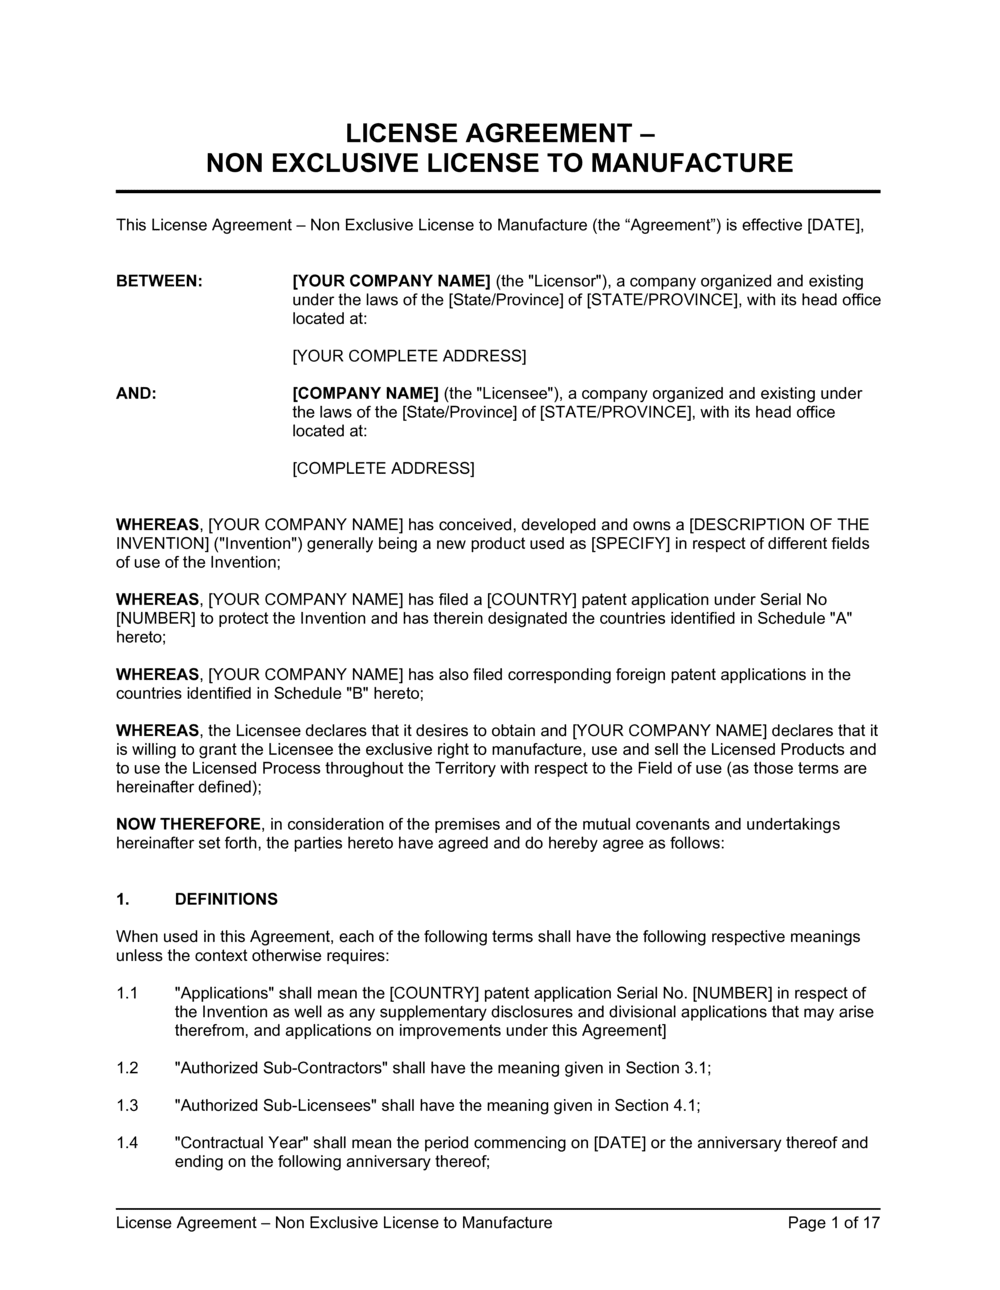 Business-in-a-Box's License Agreement Non-Exclusive License to Manufacture Template